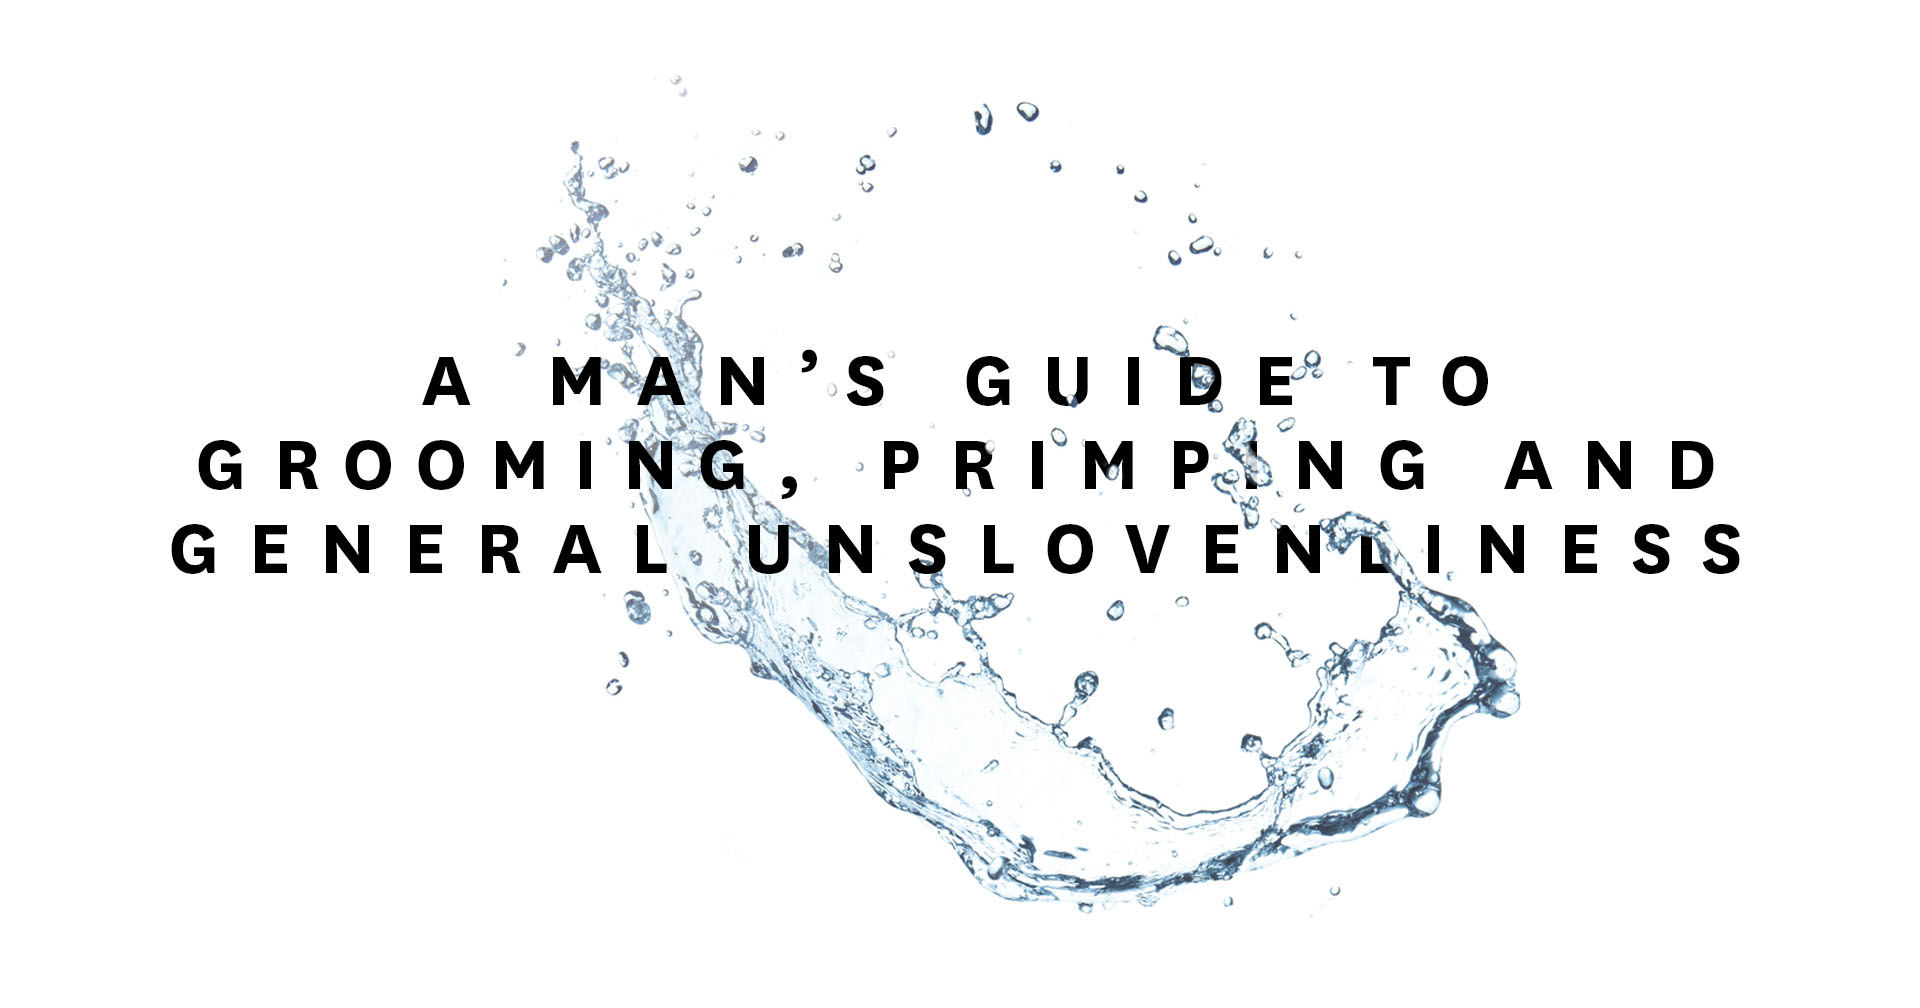 A Man's Guide to Grooming, Primping and General Unslovenliness